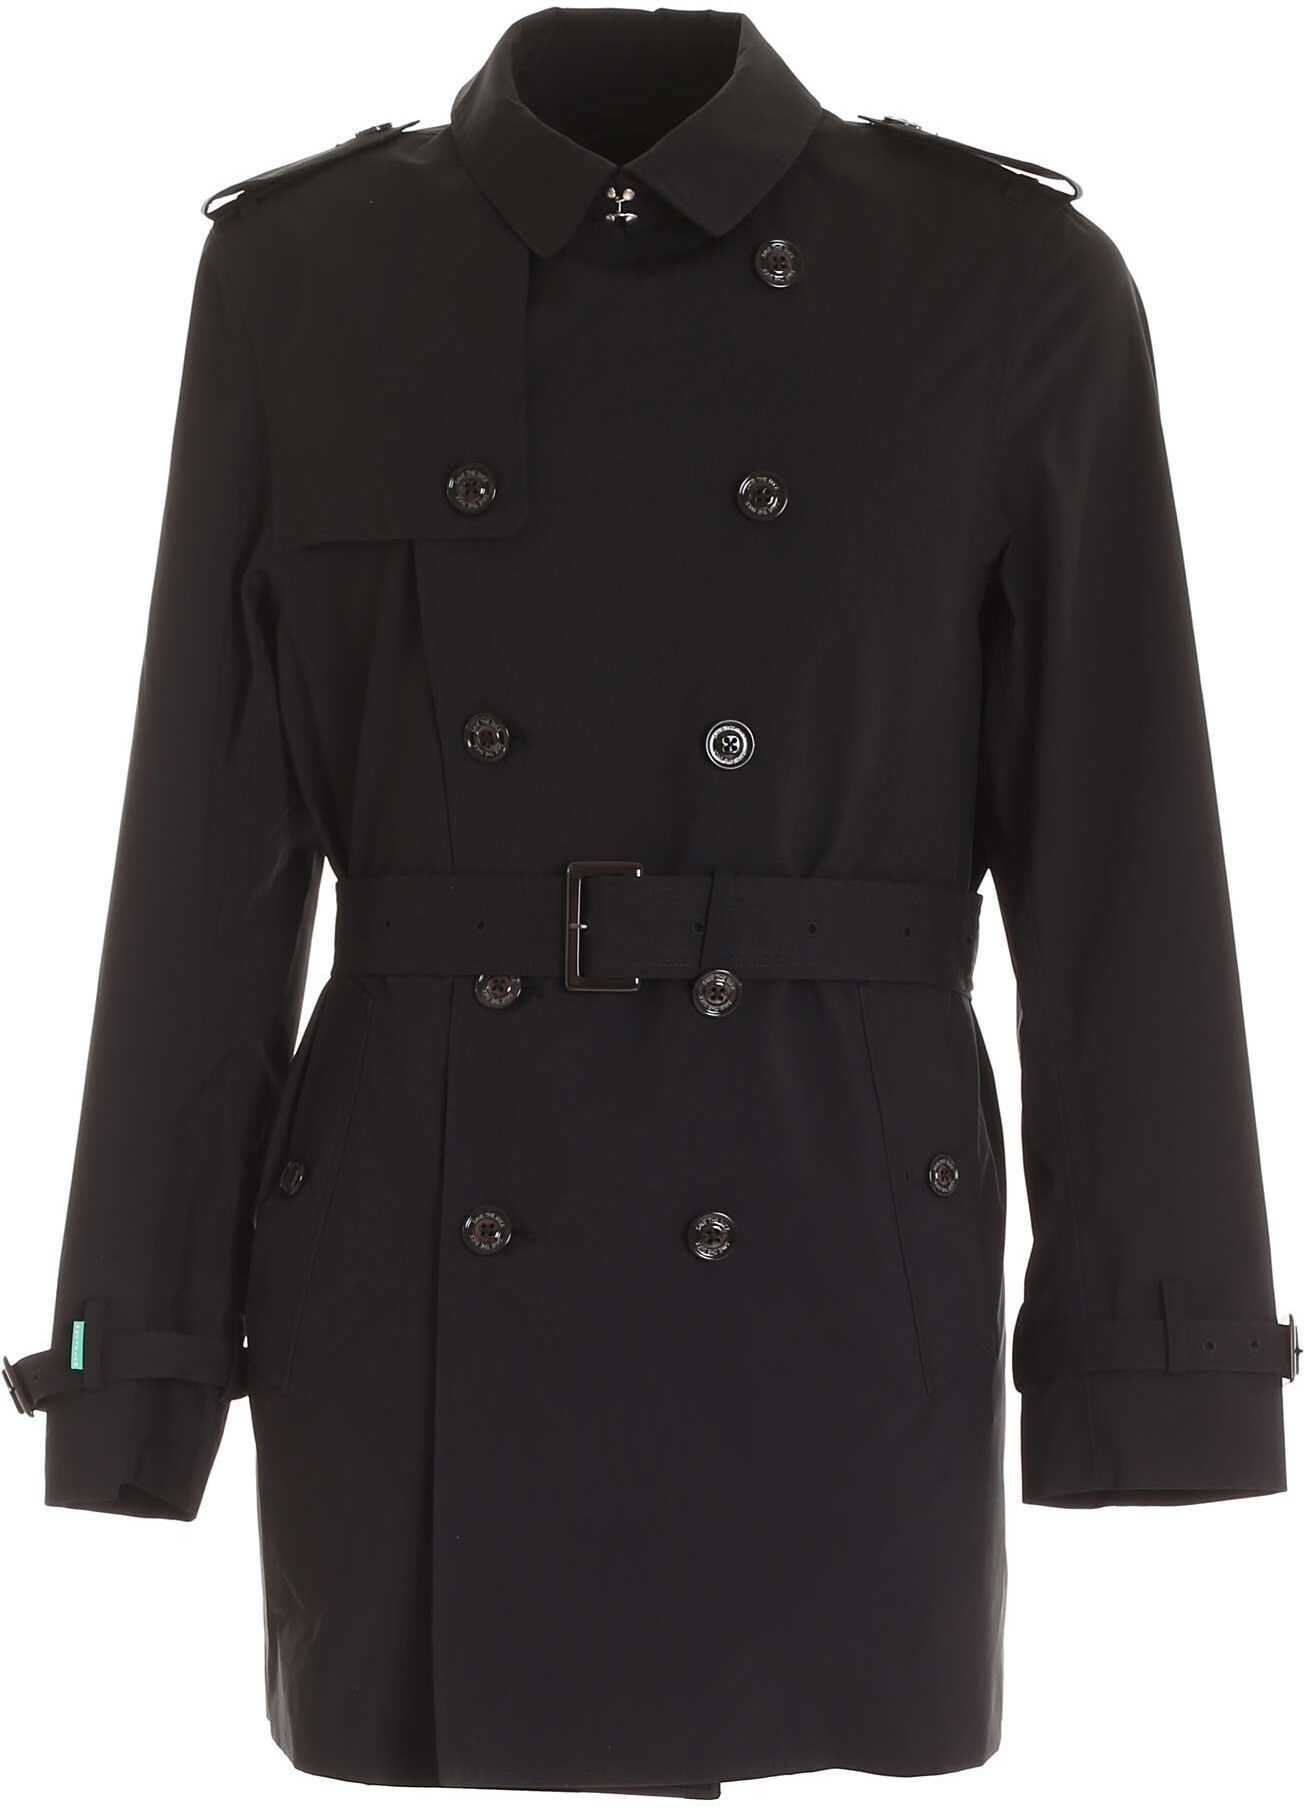 Save the Duck Double-Breasted Trench Coat In Black Black imagine